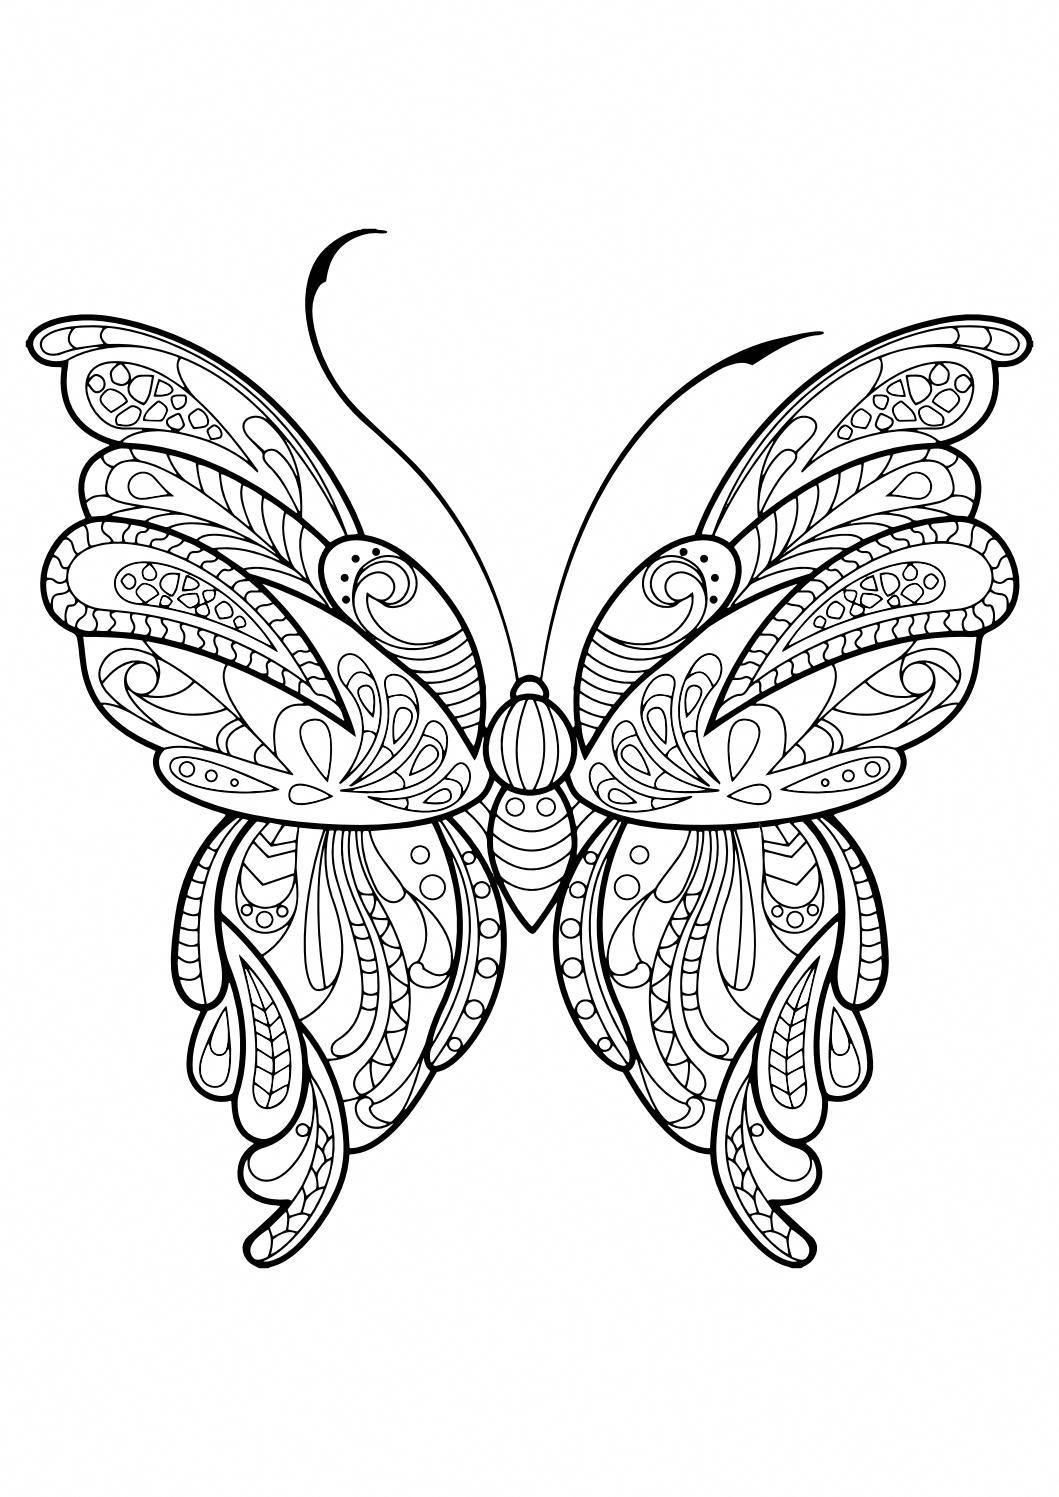 4 Free Butterfly Coloring Pages To Print Realistic Typed Mindfulness Techniques Butterfly Pictures To Color Butterfly Coloring Page Animal Coloring Pages